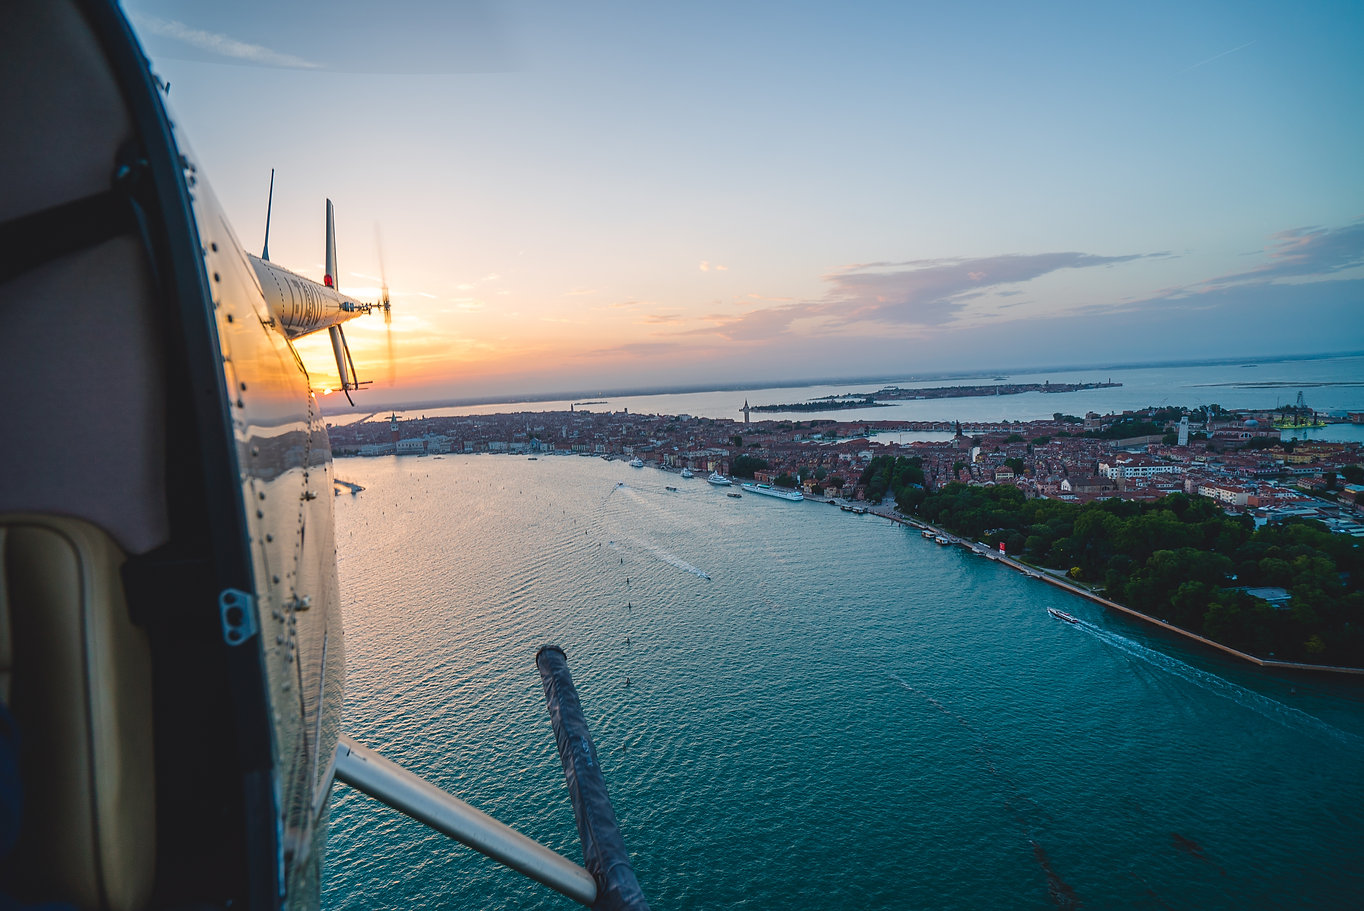 helivenice-tail-sunset.jpg